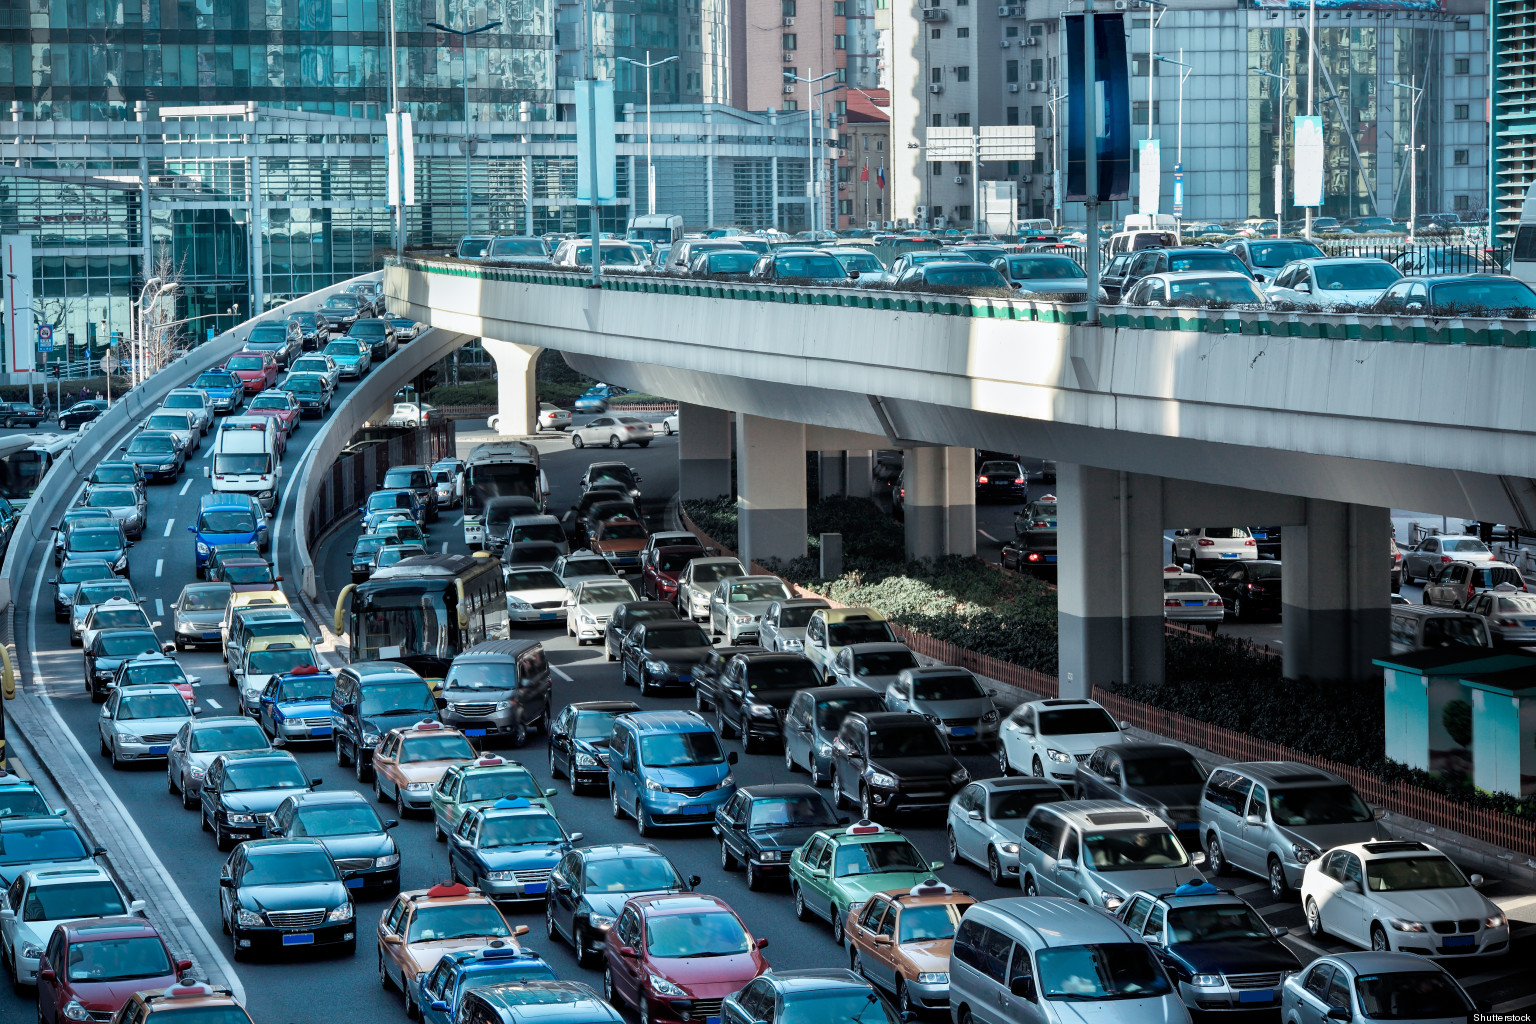 traffic pollution Traffic congestion increases vehicle emissions and degrades ambient air quality, and recent studies have shown excess morbidity and mortality for drivers, commuters and individuals living near major roadways.